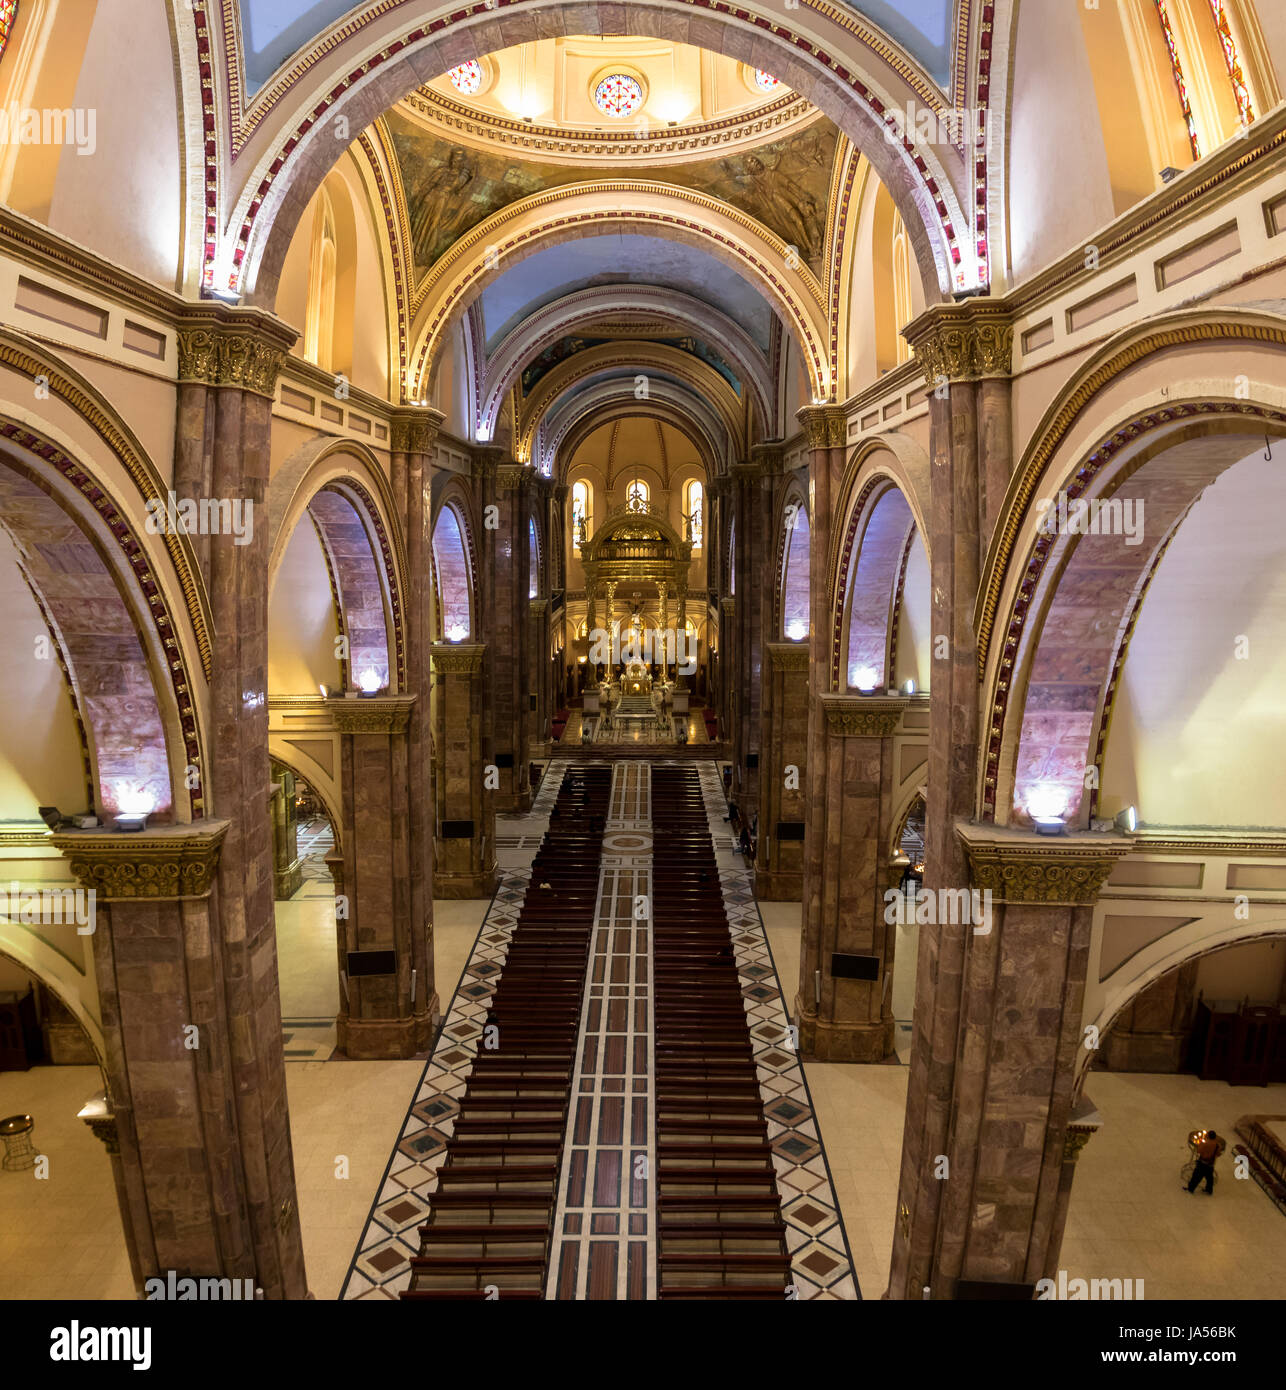 Interior of Inmaculada Concepcion Cathedral - Cuenca, Ecuador - Stock Image